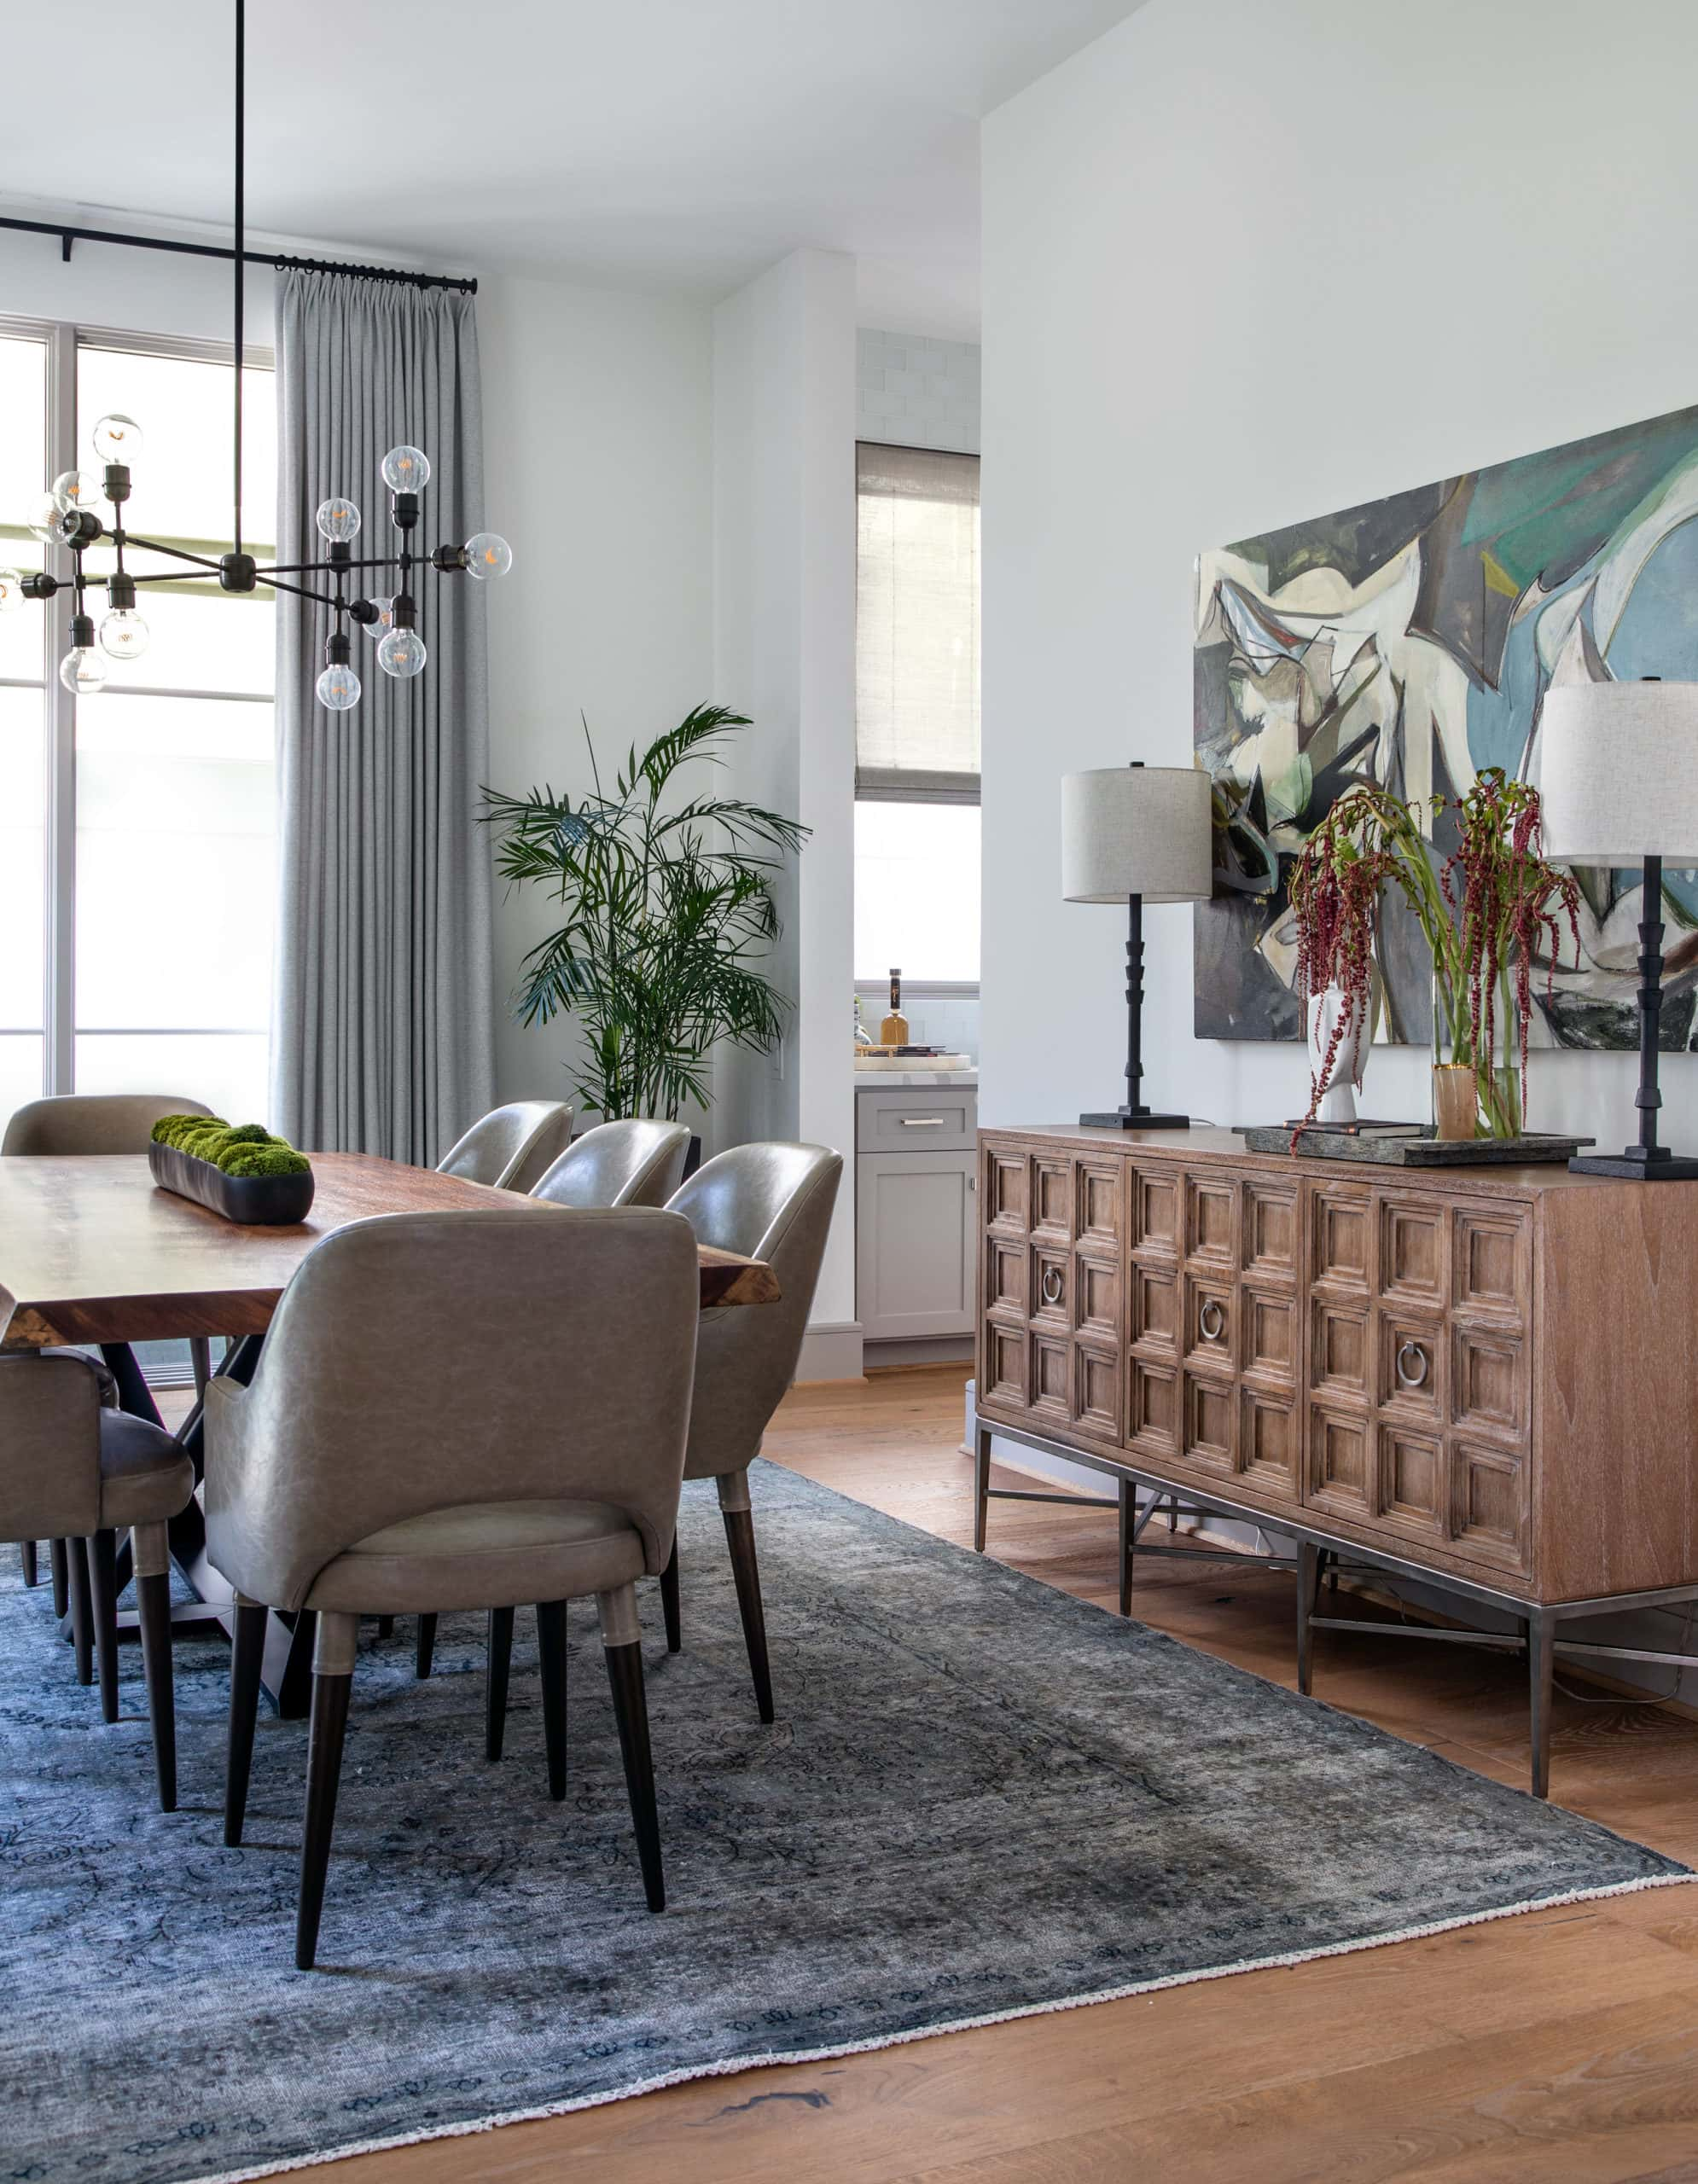 8 Essential Questions To Ask When Hiring An Interior Designer Laura U Design Collective